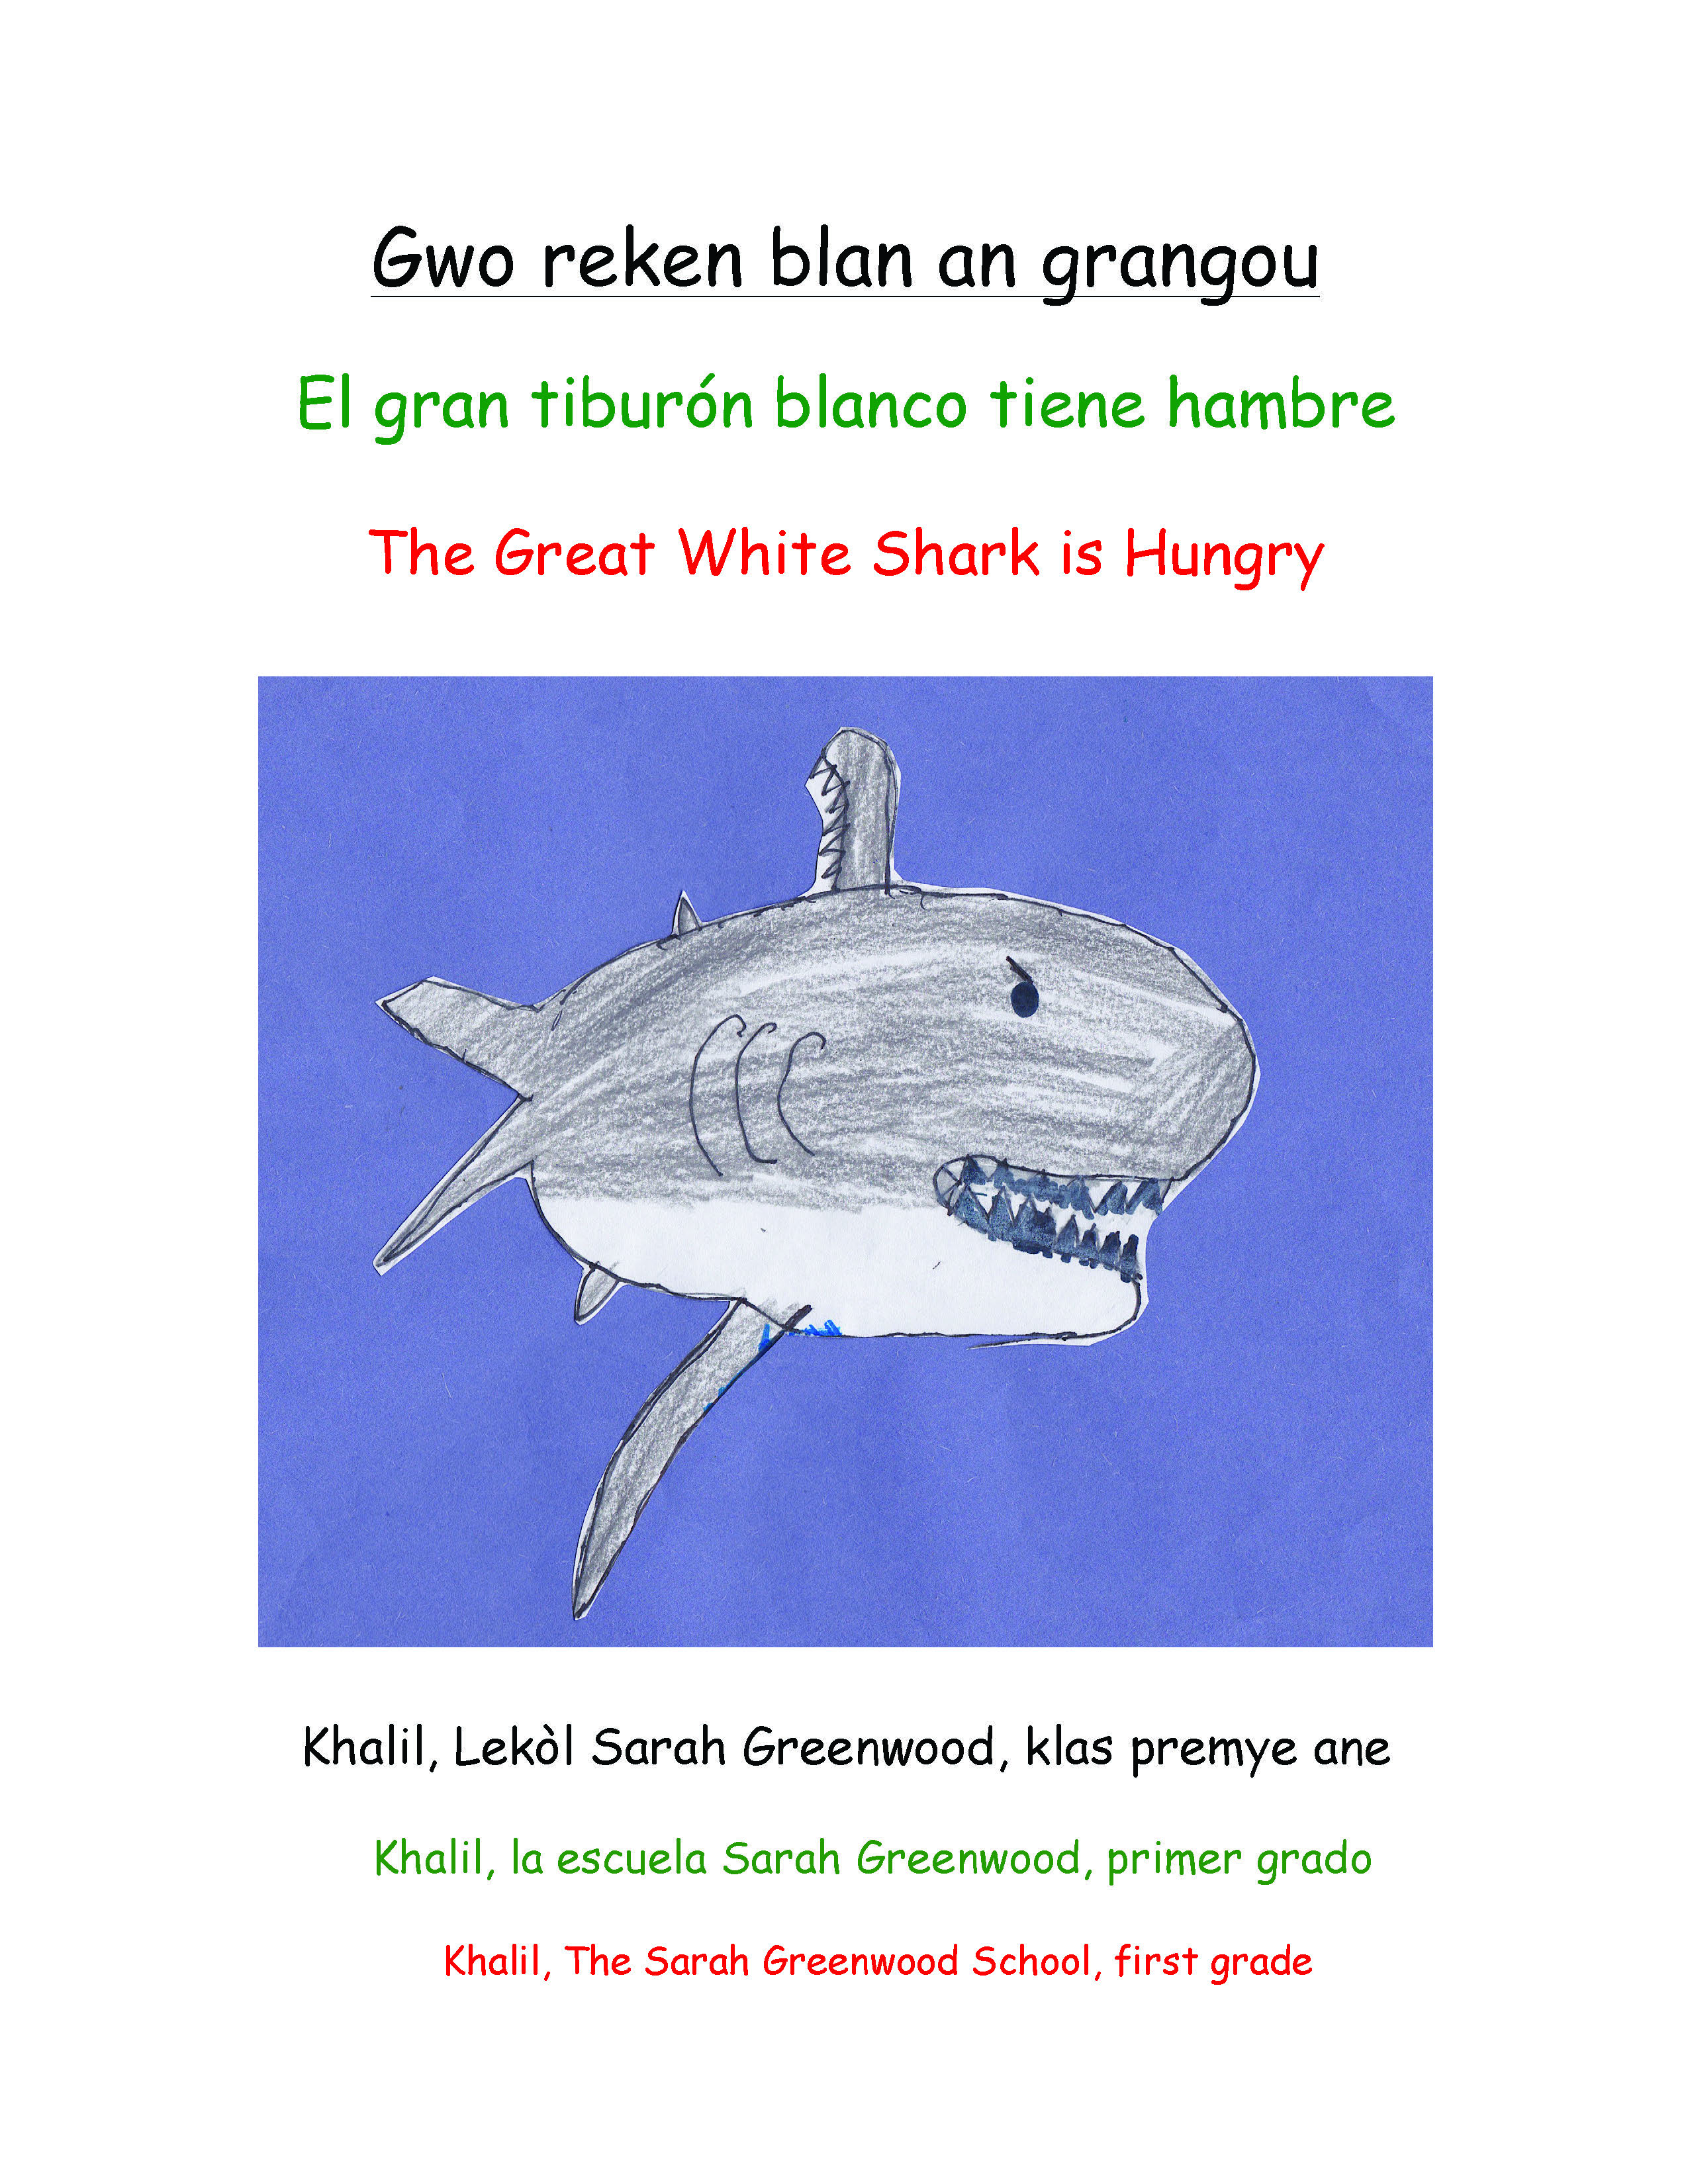 Gwo reken blan an grangou / The Great White Shark is Hungry